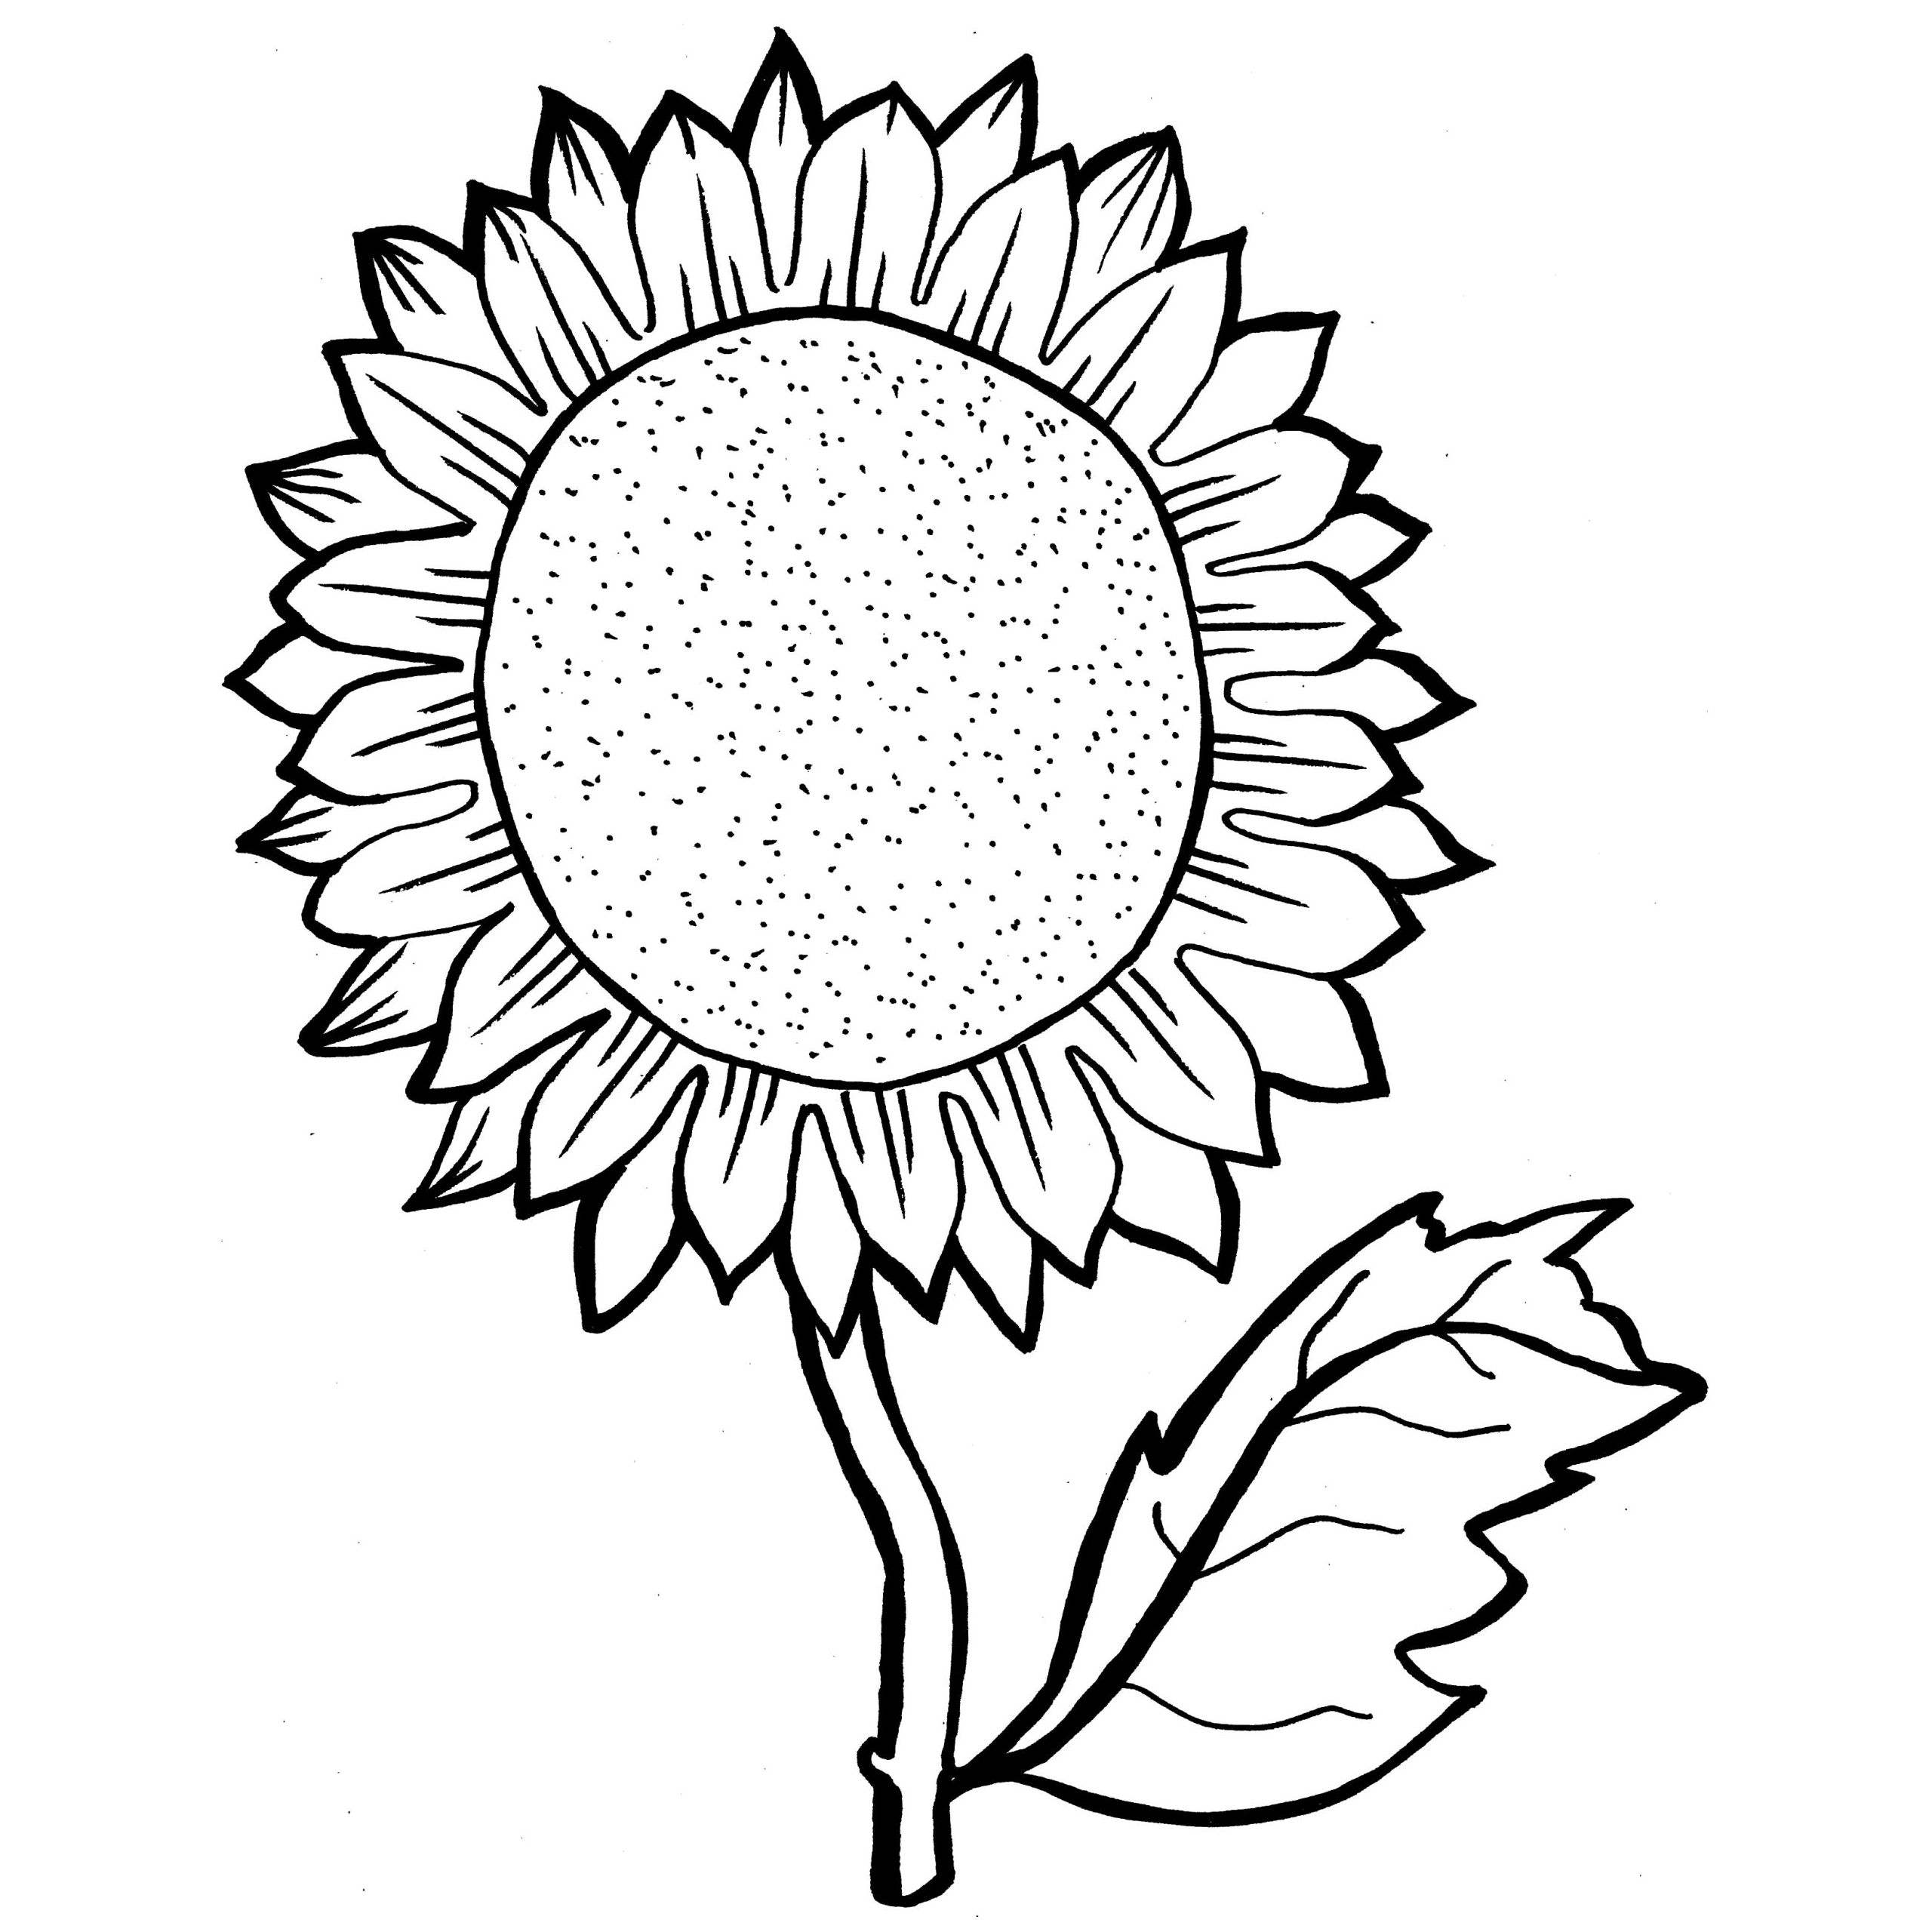 coloring pages of realistic sunflowers | Sunflower Drawing Color at GetDrawings.com | Free for ...